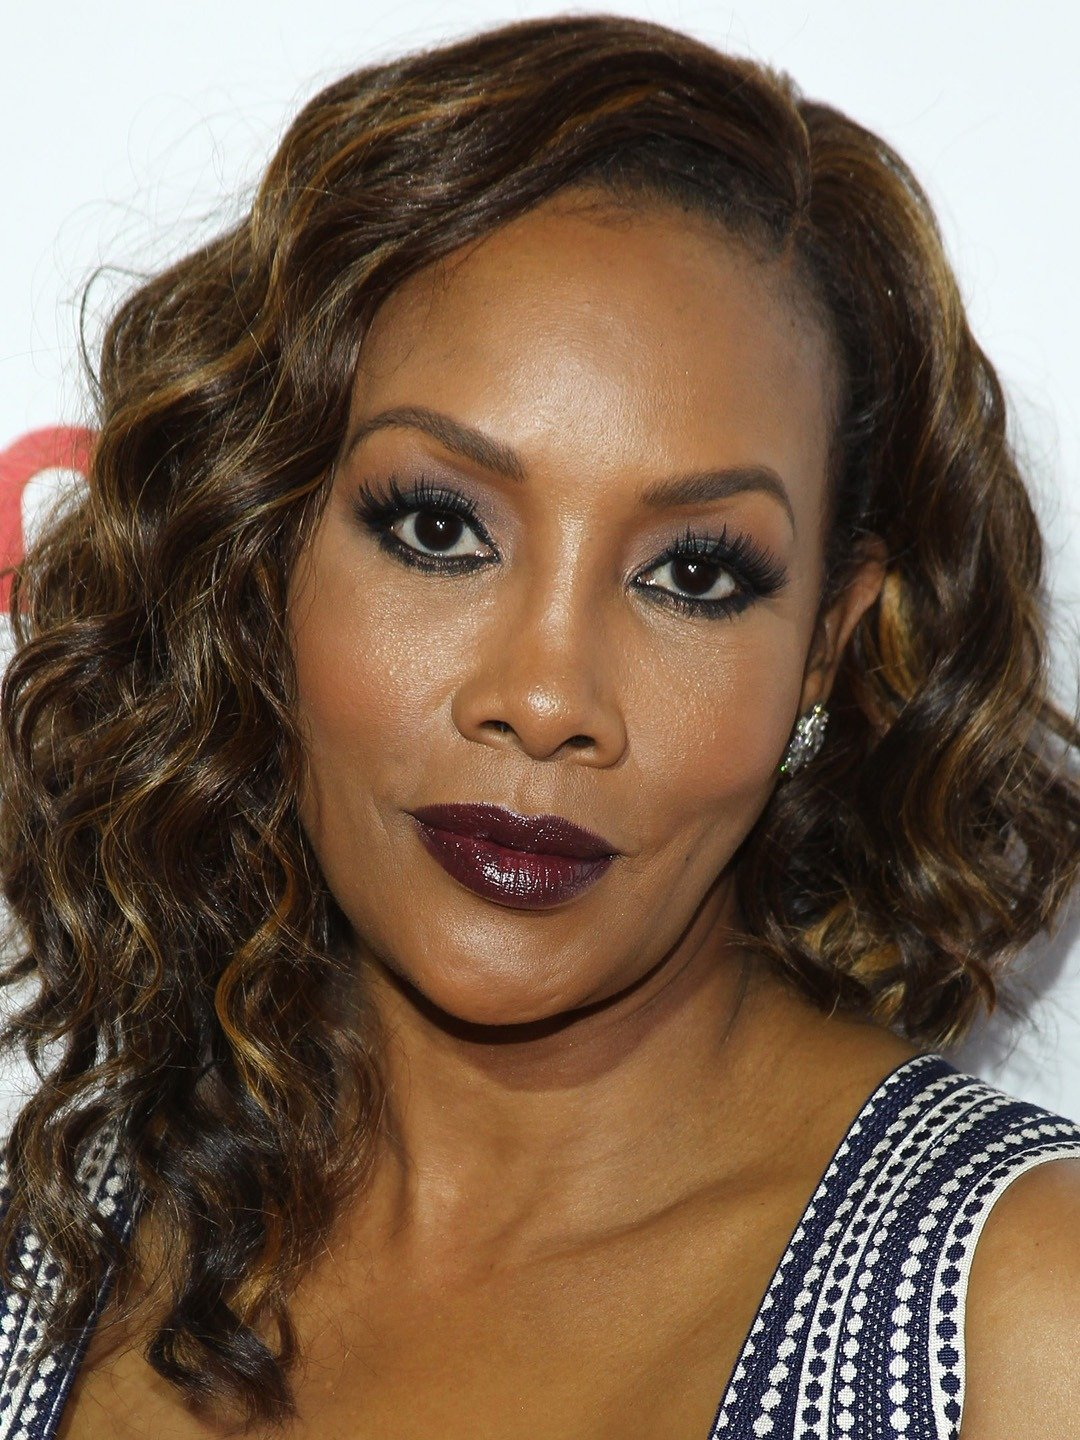 Vivica fox born on the fourth of july